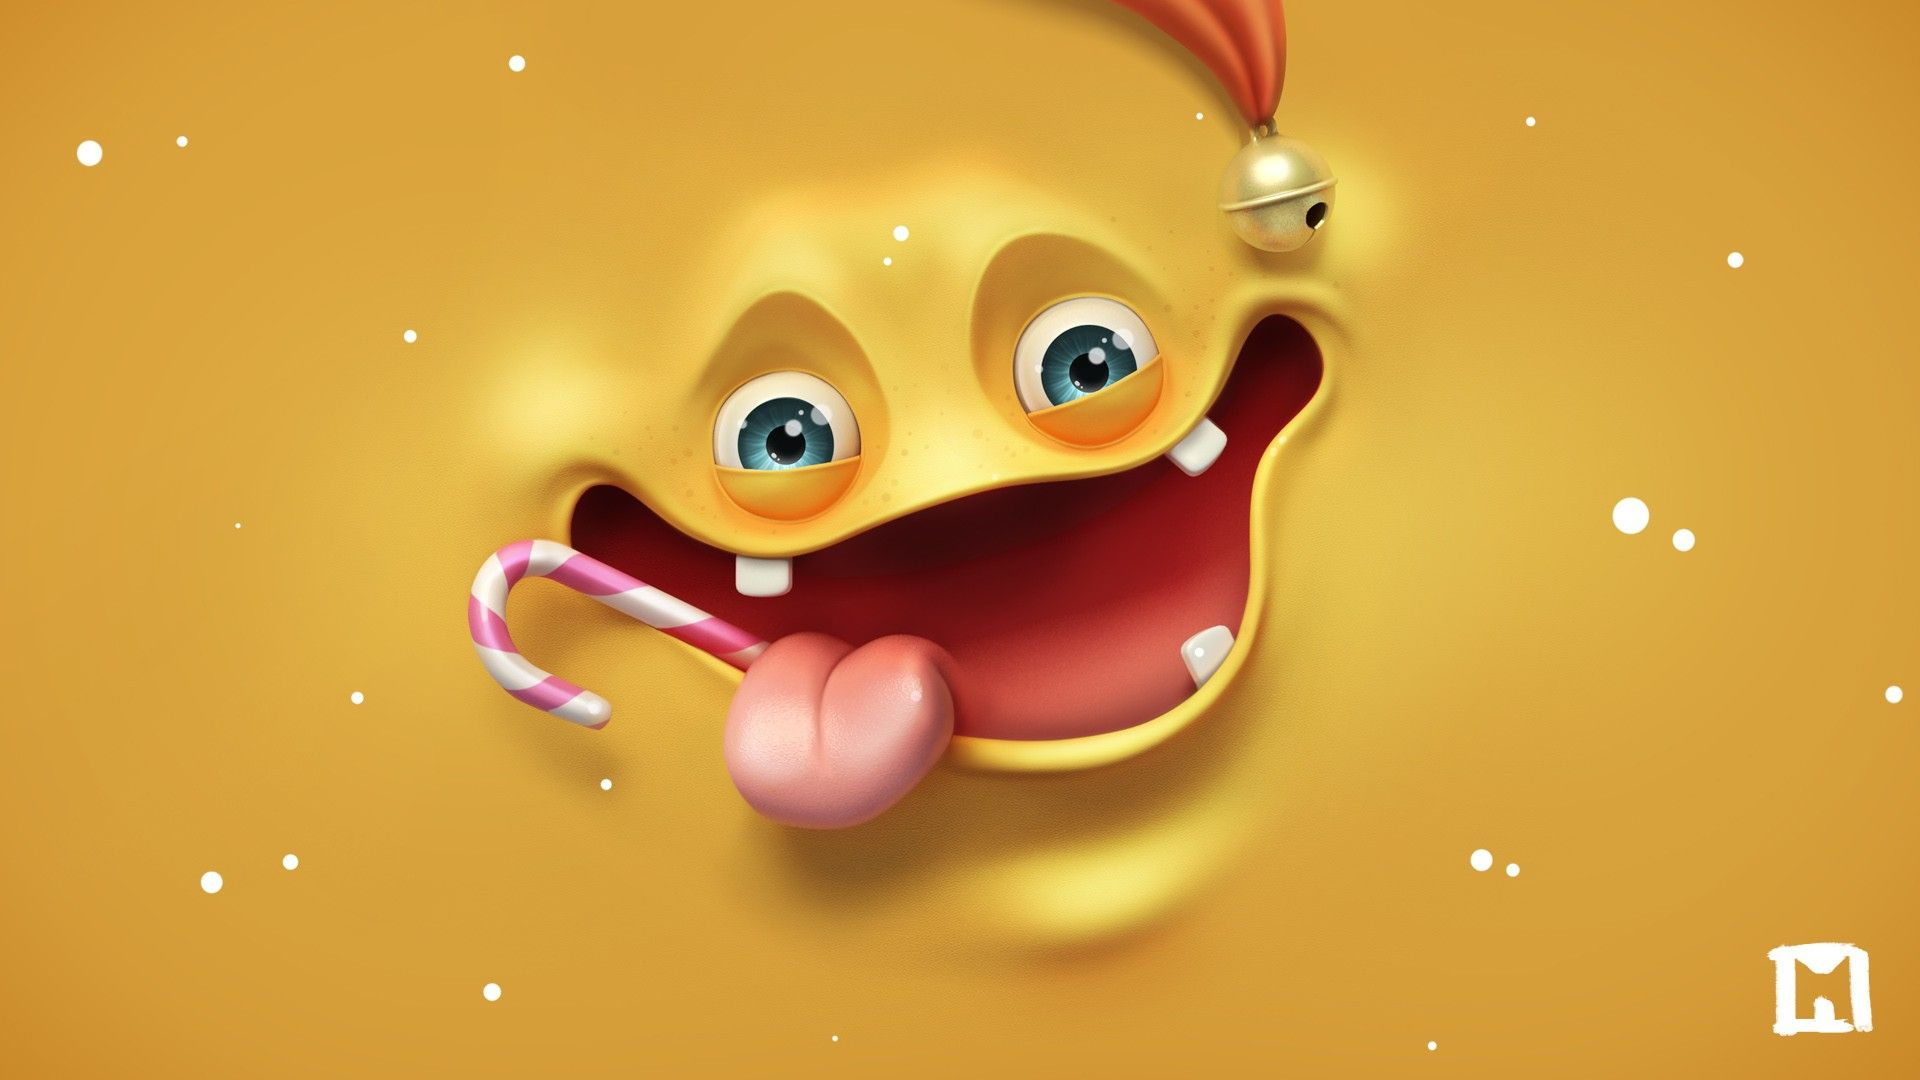 Popular Wallpaper Animated Funny Cartoon Free Download For Mobile Phone - 2fef78887c72ac1d38f6f0acd96c6bf2  Photograph_74657.jpg